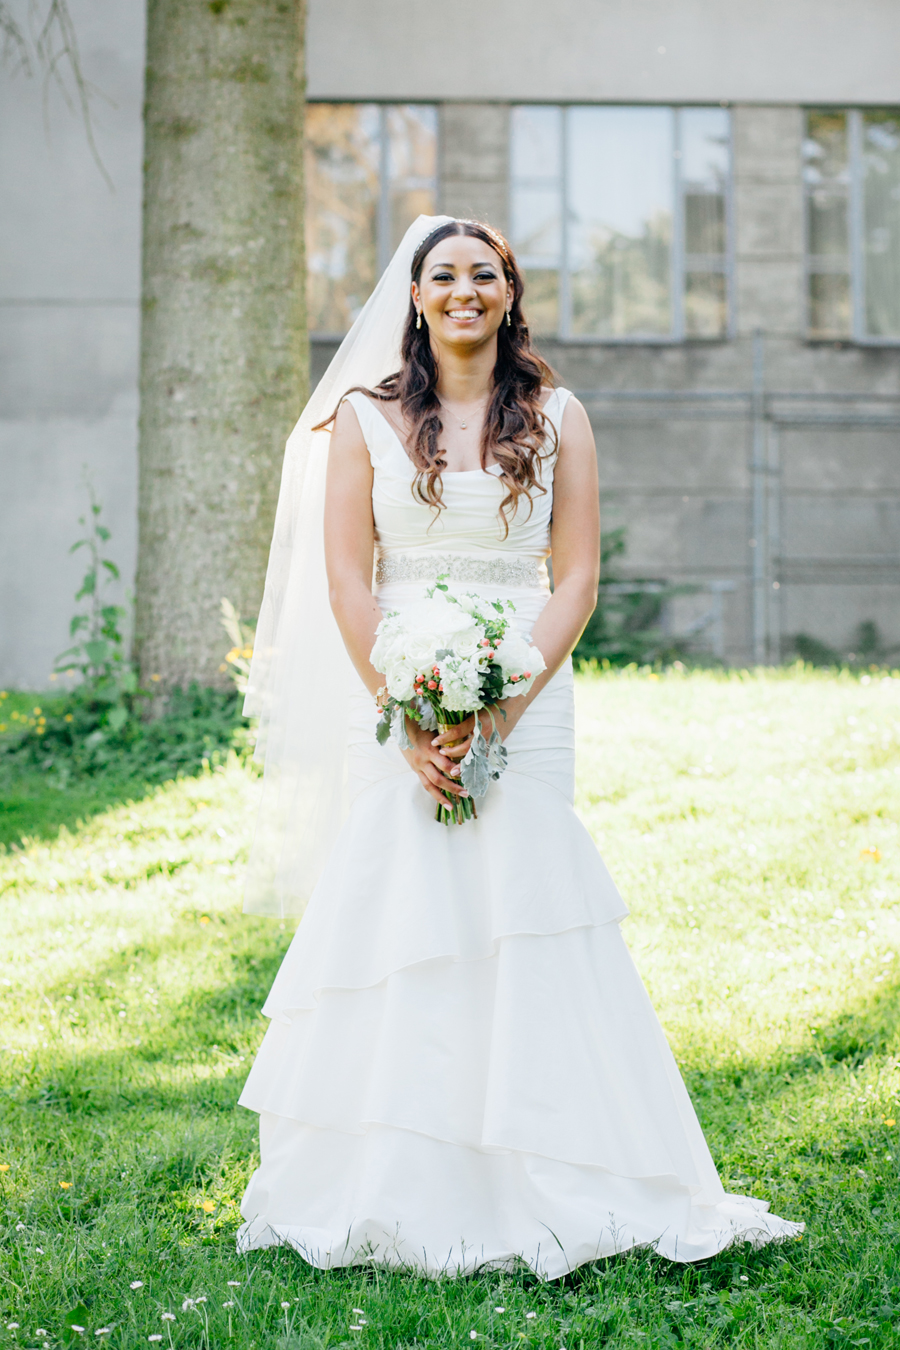 065-volunteer-park-seattle-wedding-katheryn-moran-photography.jpg